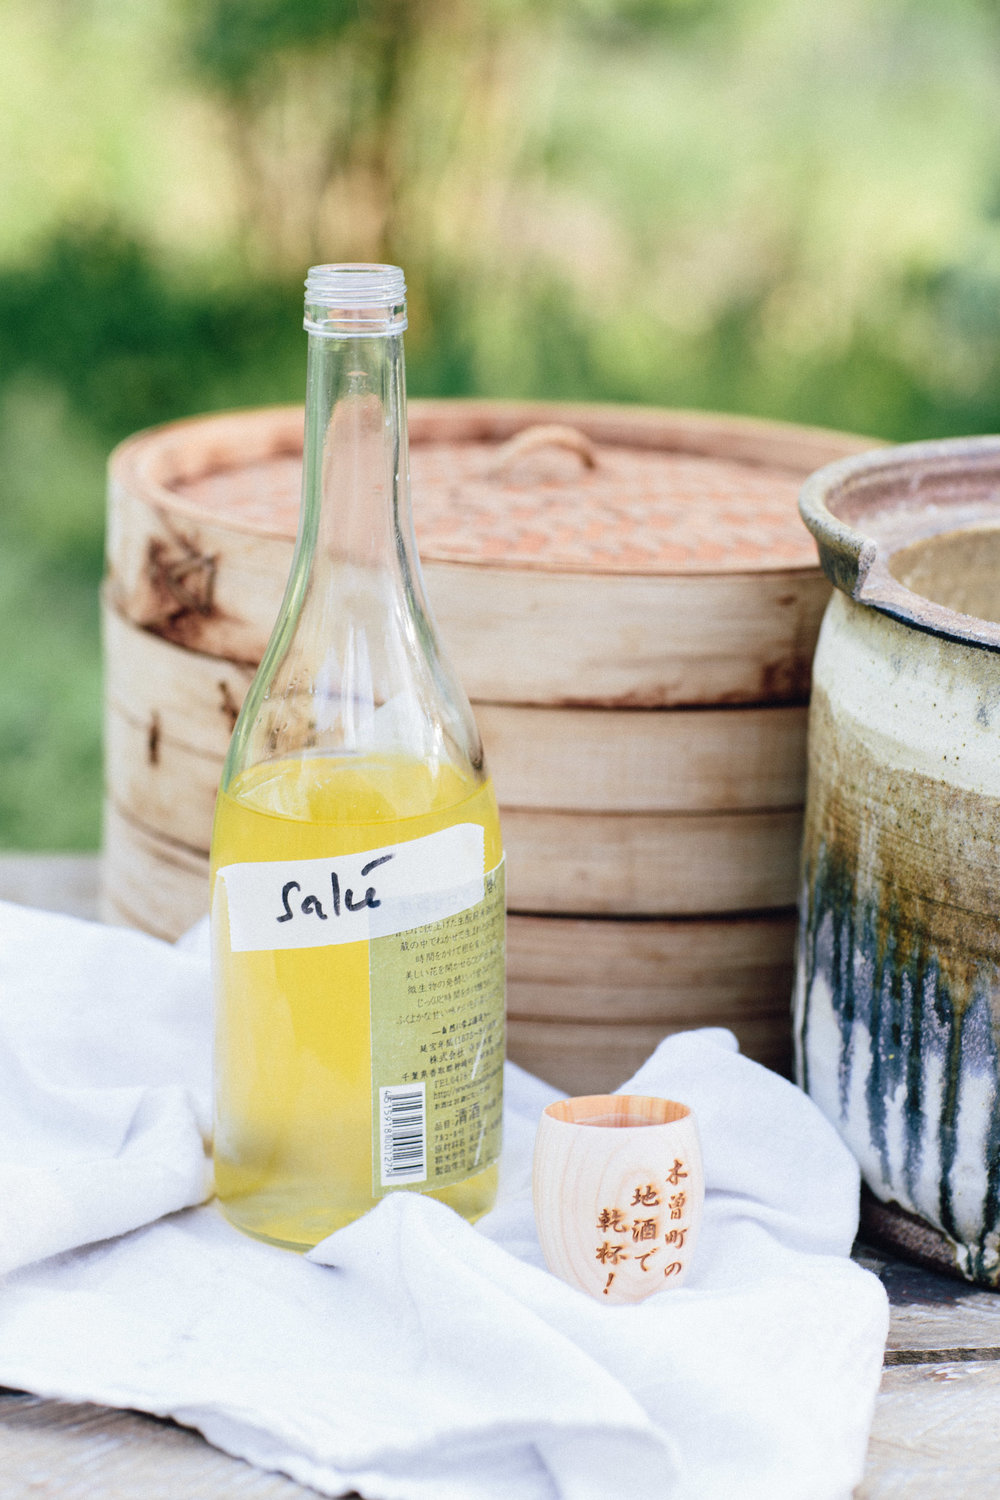 Another highlight was learning to make 100% wild fermented Sake, by using the Bodai Moto-Zukuri process – an ancient method that Sandor learned in Japan, from a 24th generation brewmaster.